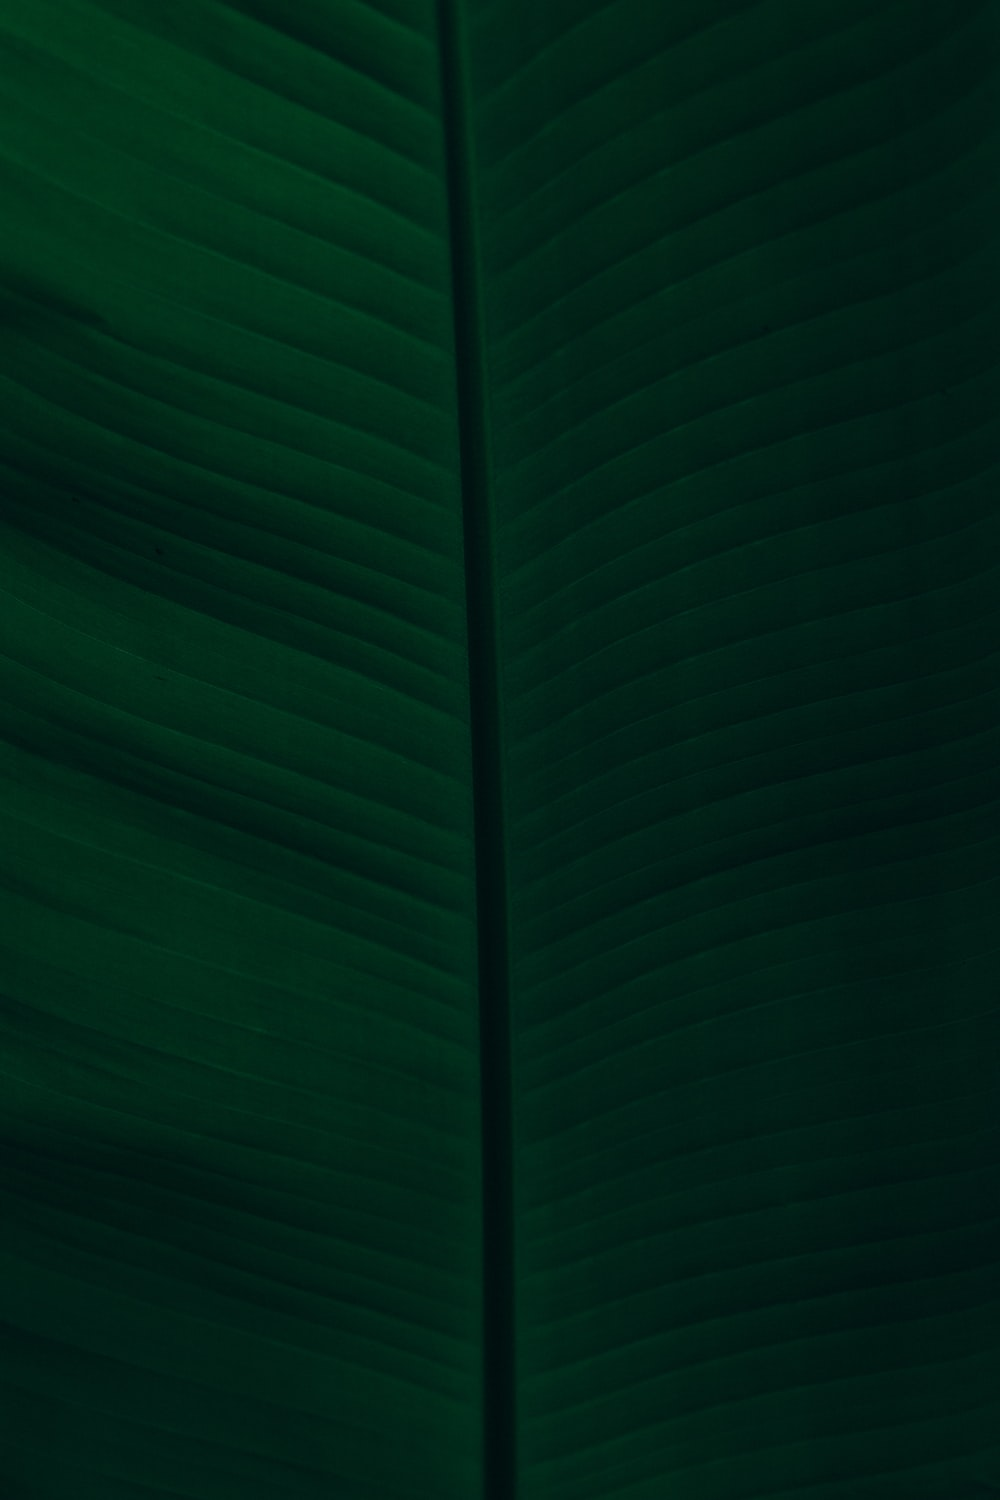 green textile in close up photography